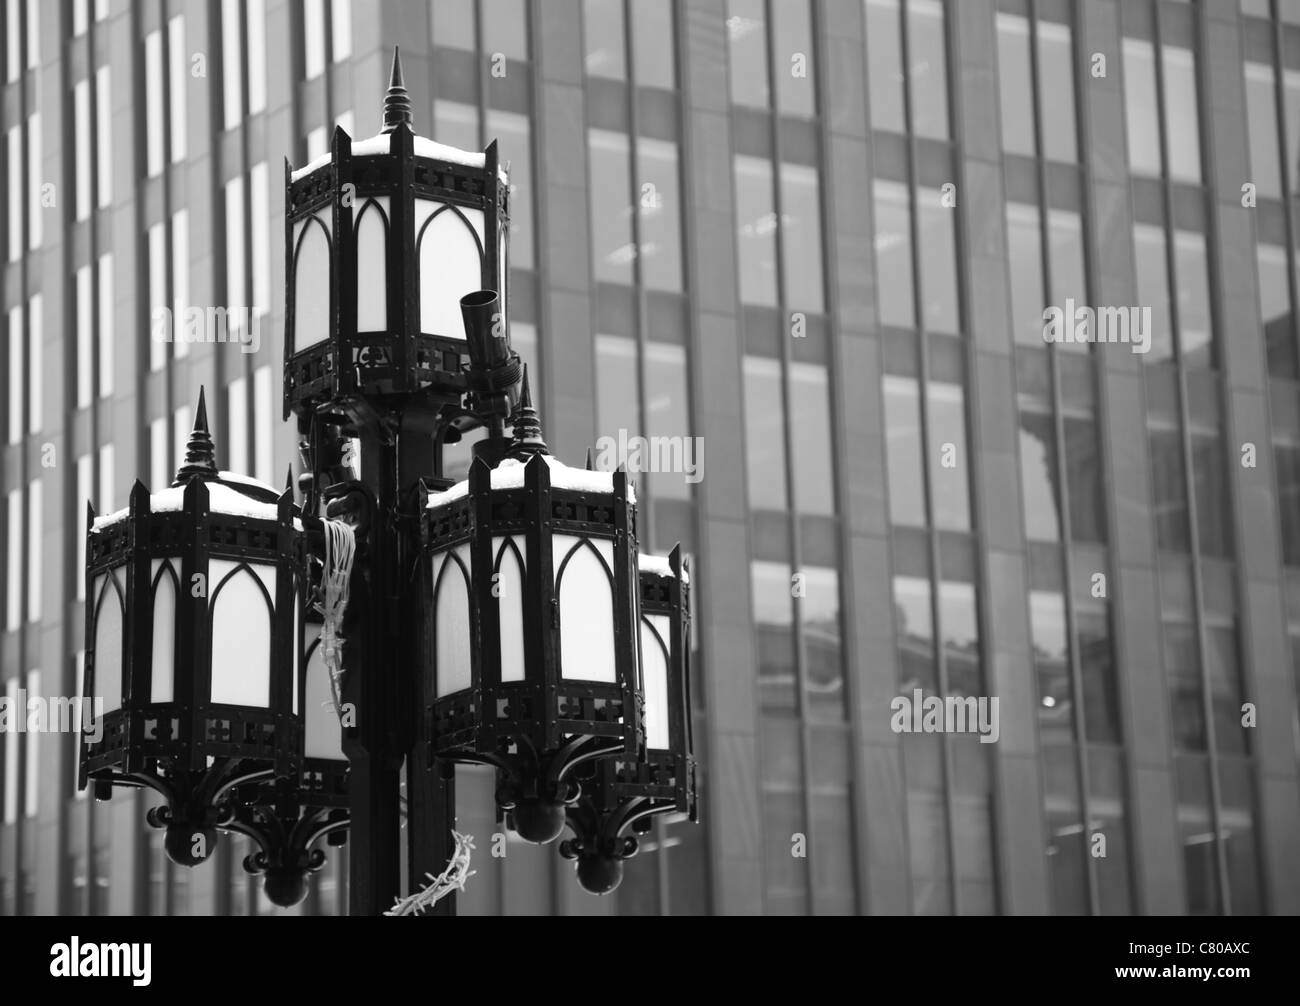 black and white photograph of a iron lamp post in historic downtown Montreal, Quebec, Canada, sky scrapper in the - Stock Image